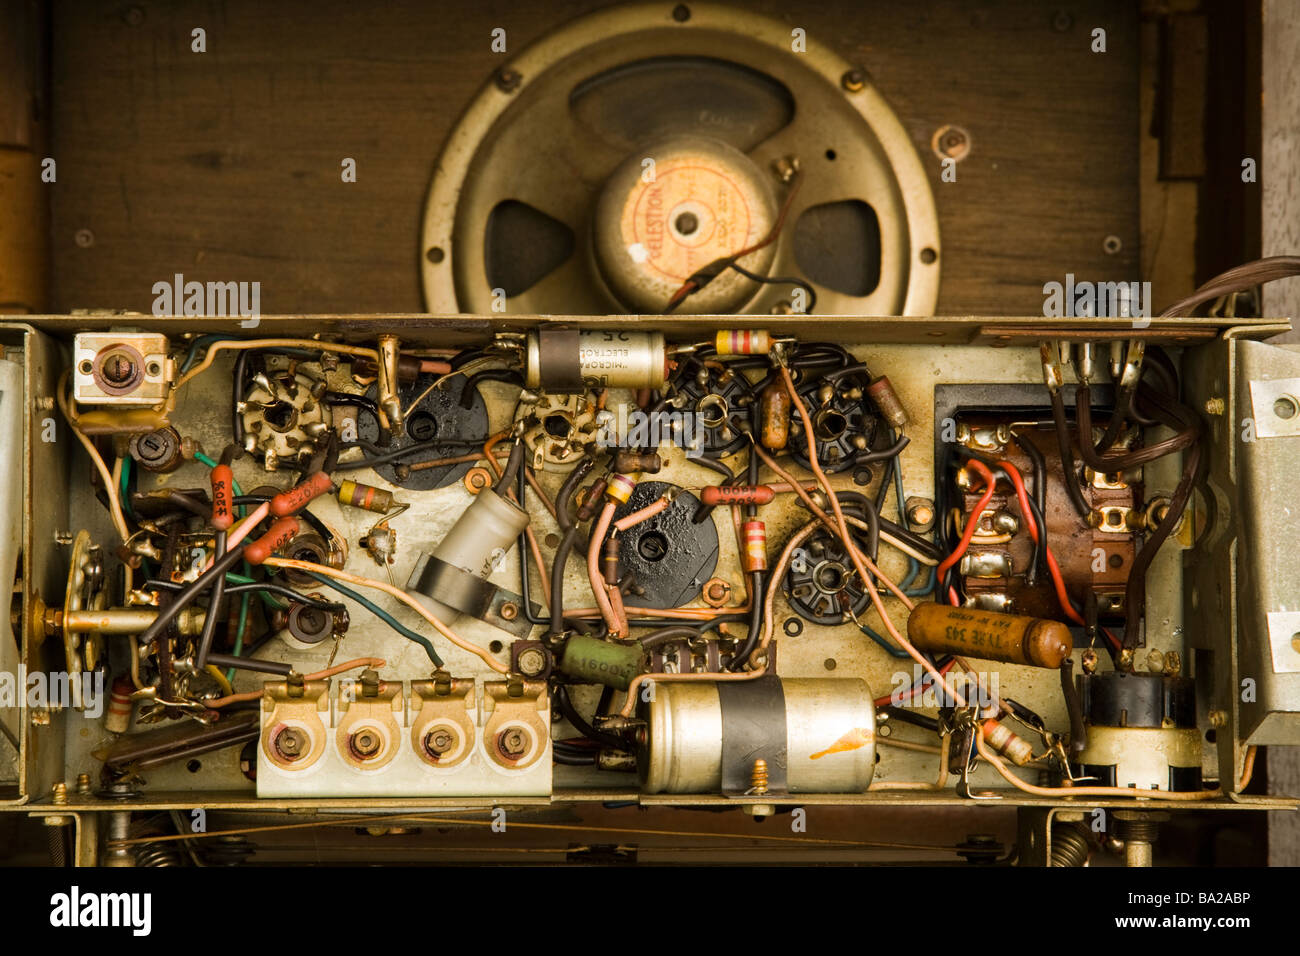 A 1950's valve radio chassis. - Stock Image